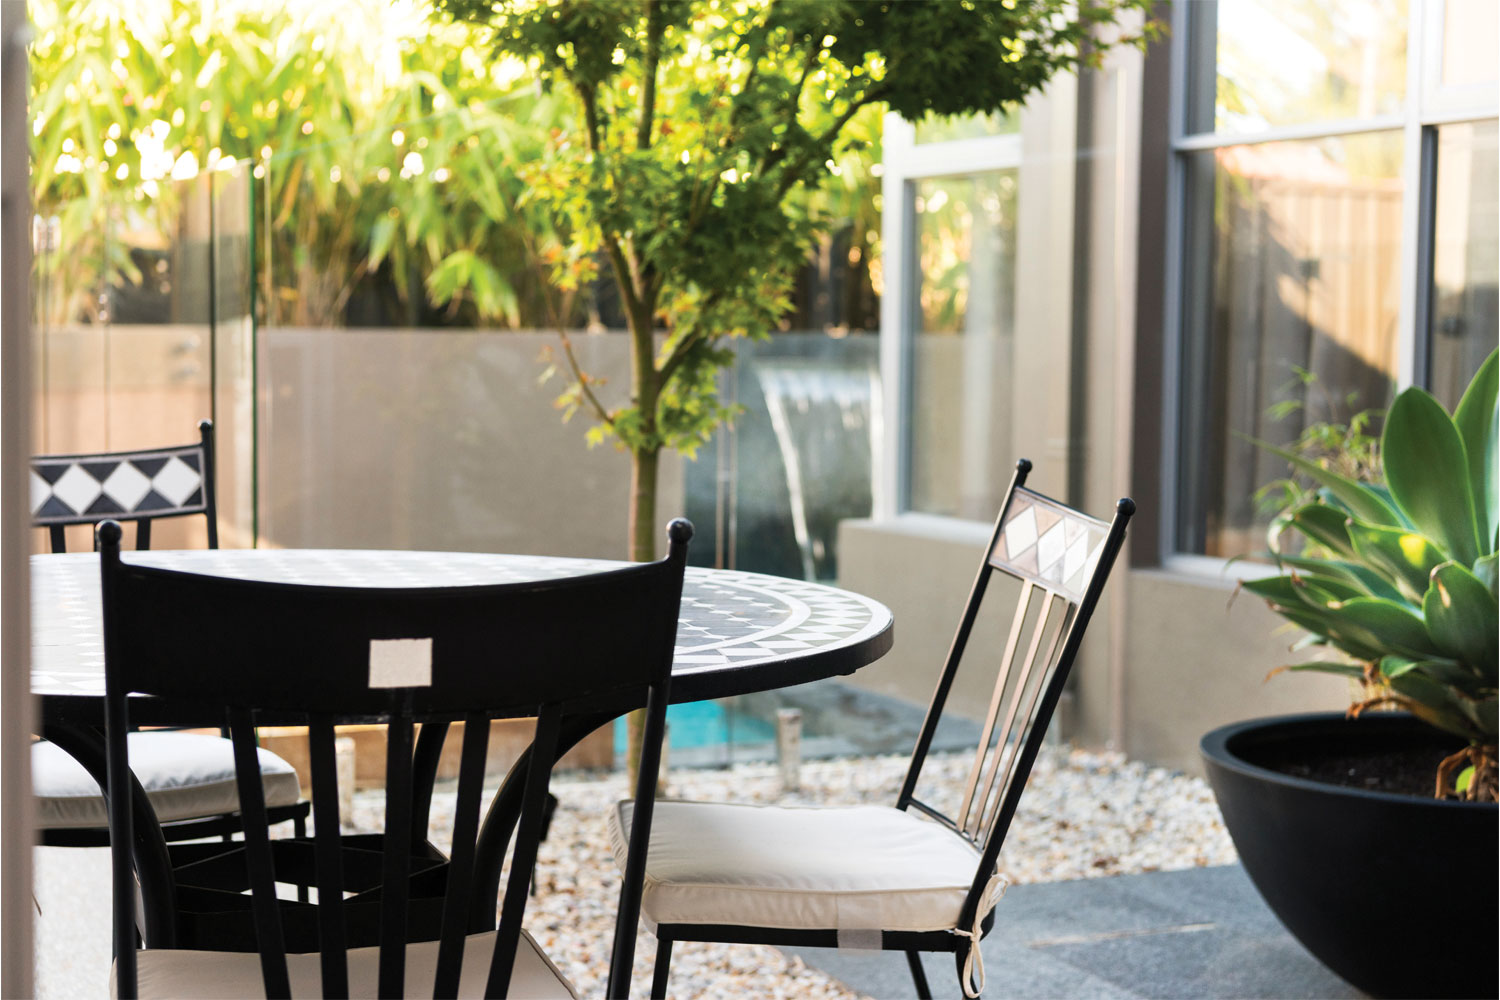 A place for all: tranquil outdoor space